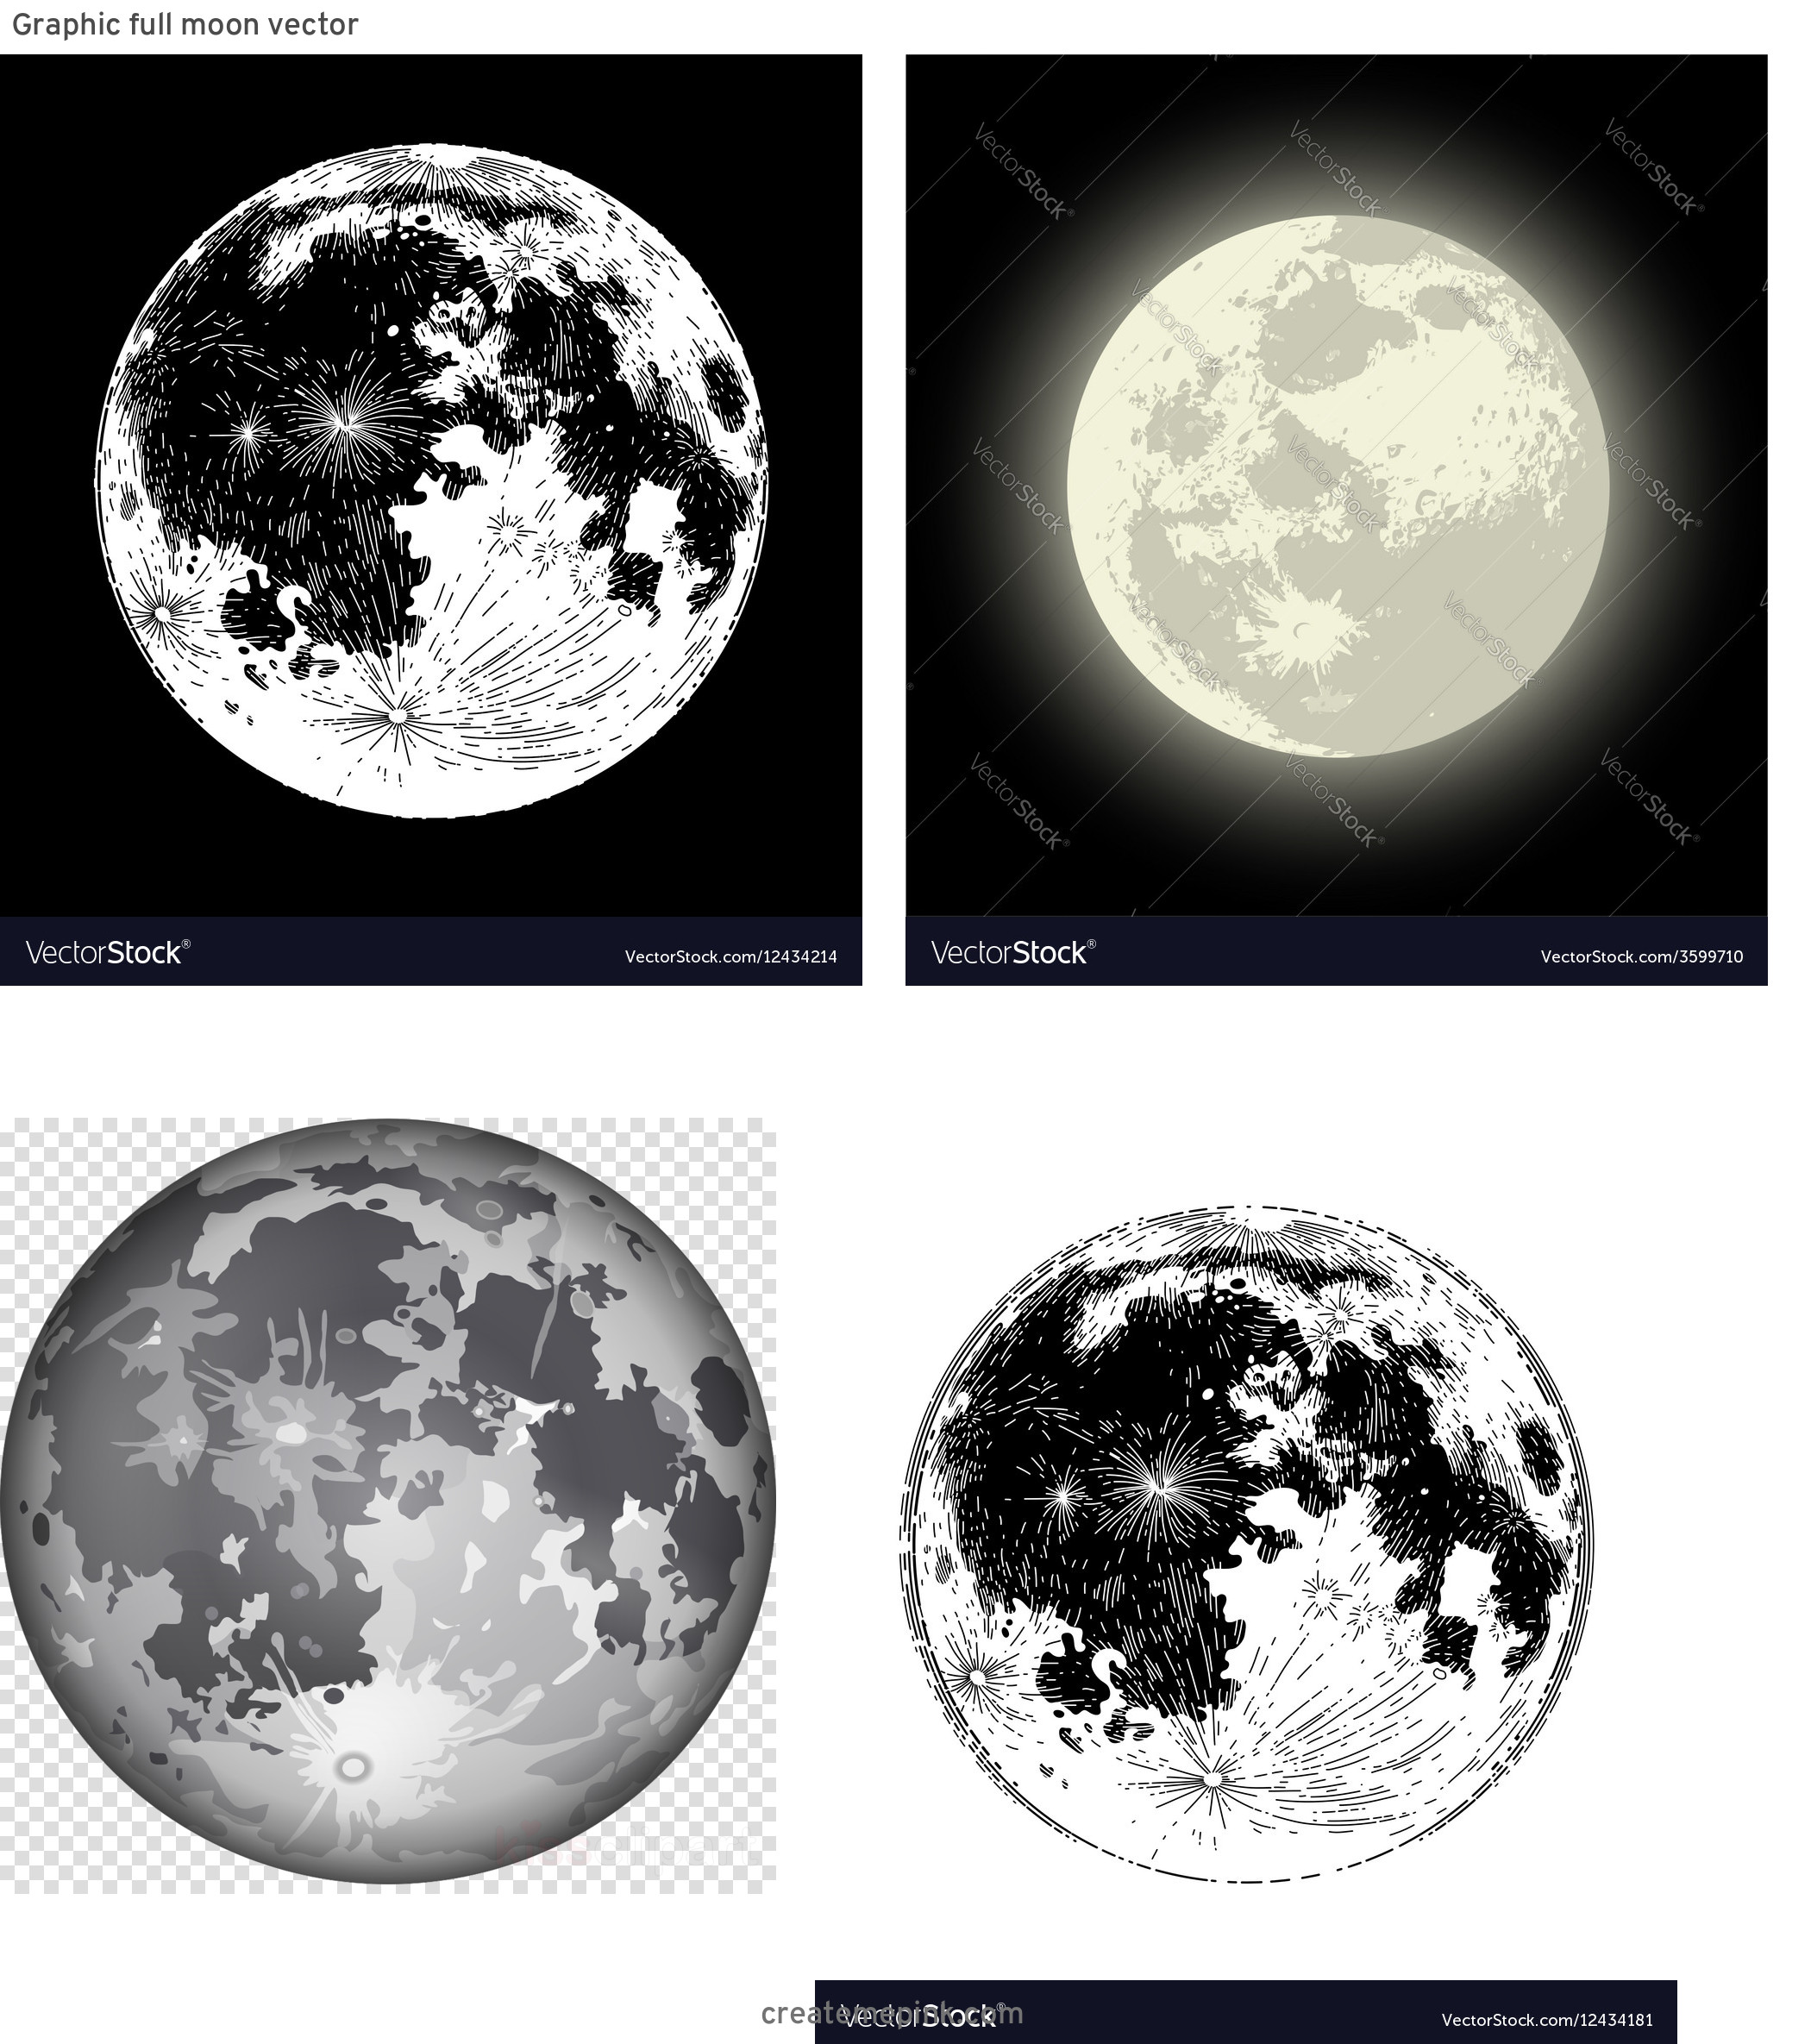 Full Moon Vector Art: Graphic Full Moon Vector